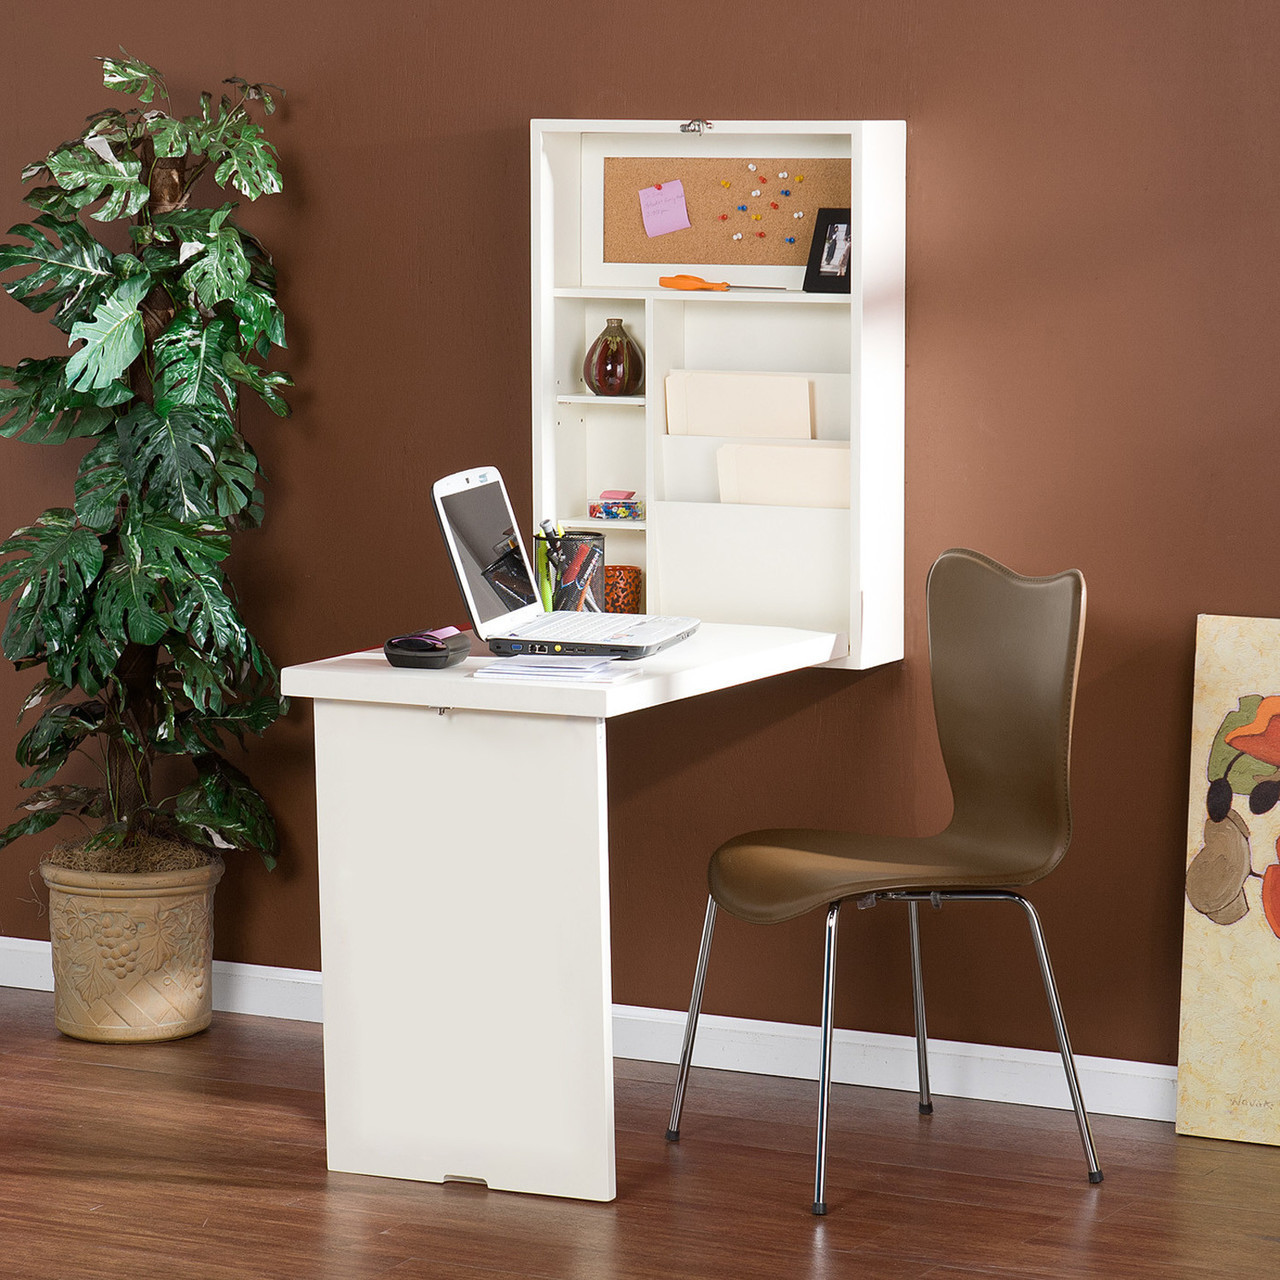 Wall Mount Fold Out Convertible Desk Computer Desk Laptop Writing Desk Shelf White Ultrasaver